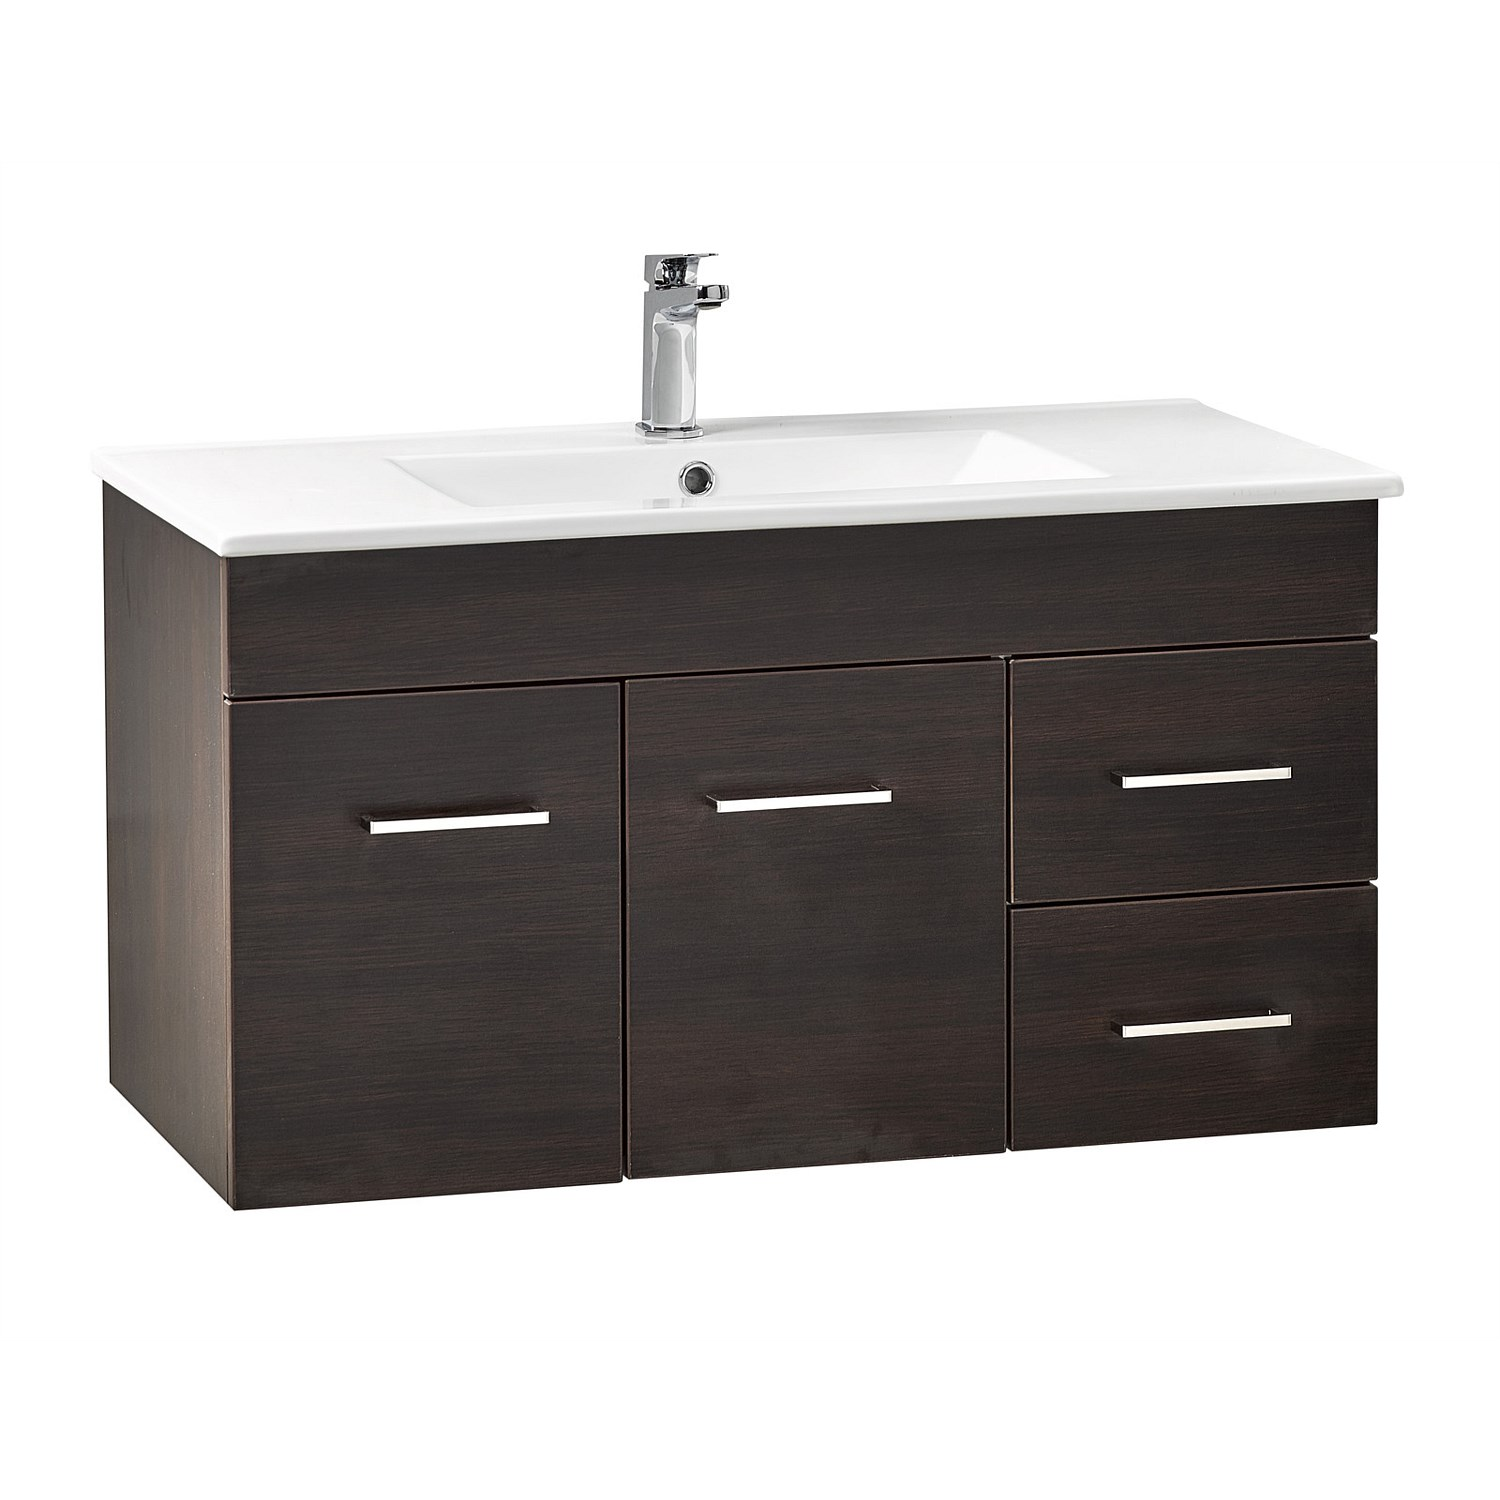 1200mm Bathroom Vanity Vanities And Storage Clearlite Cashmere Classic 1200mm